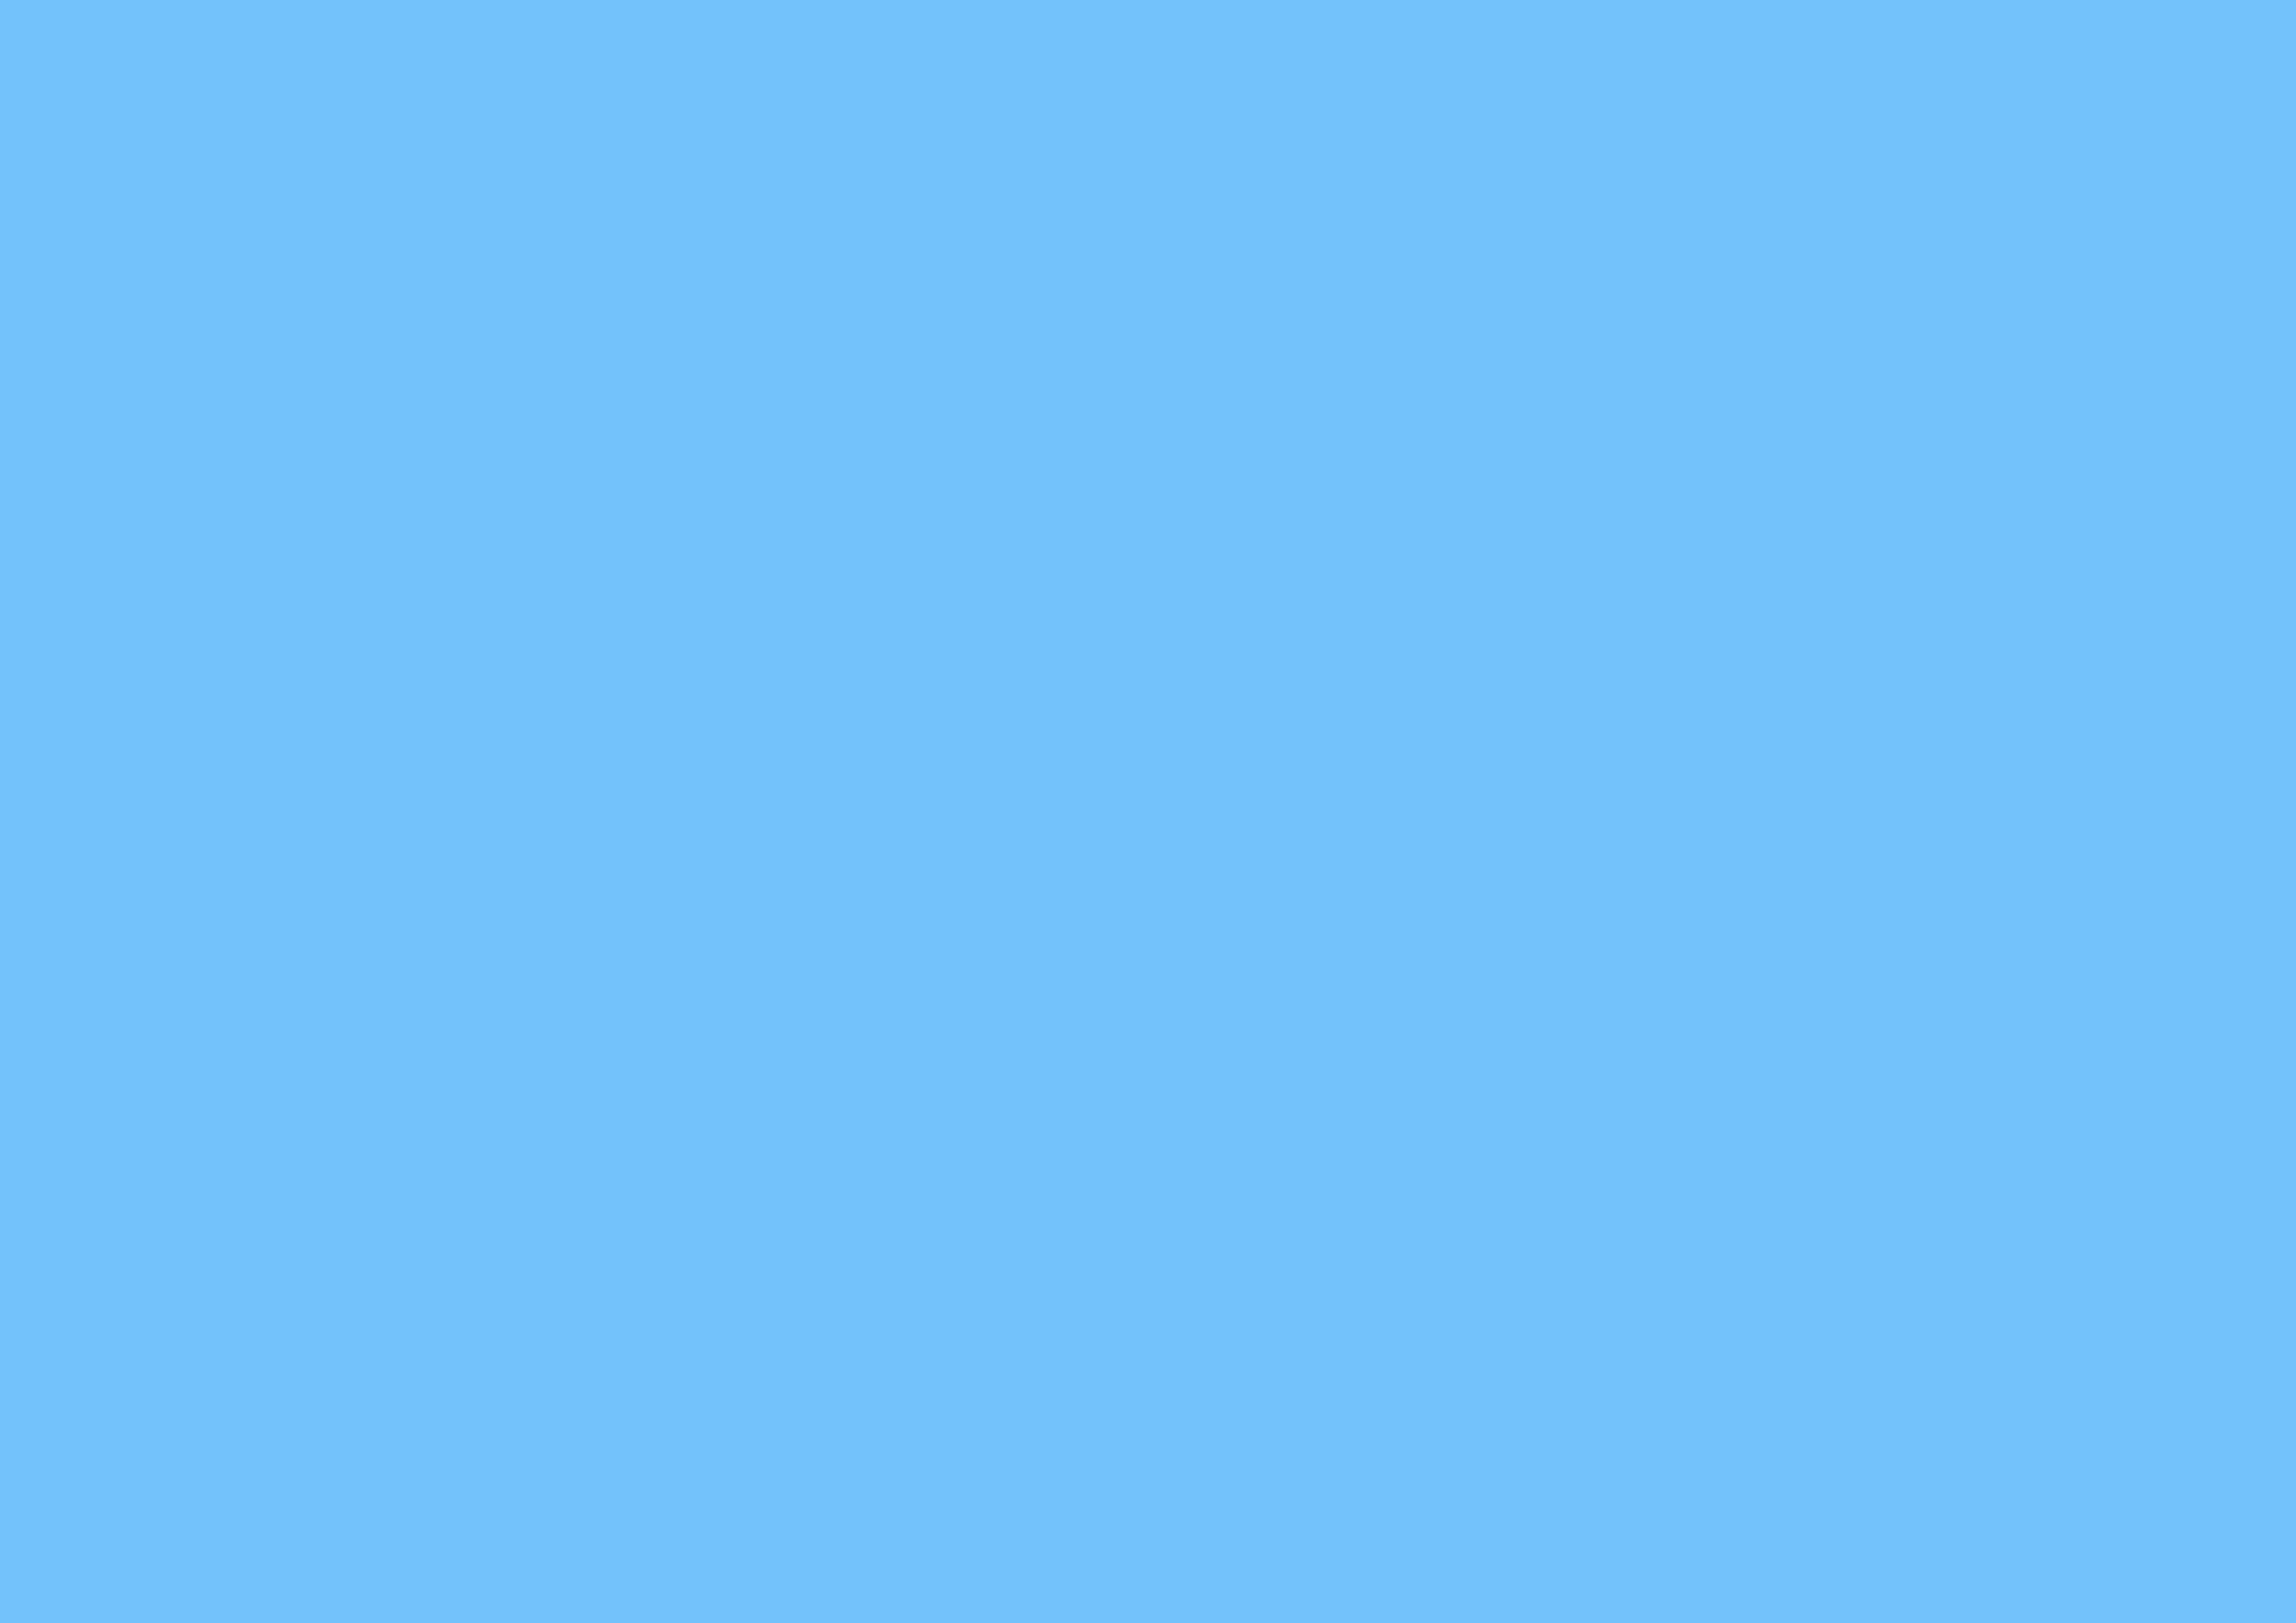 3508x2480 Maya Blue Solid Color Background